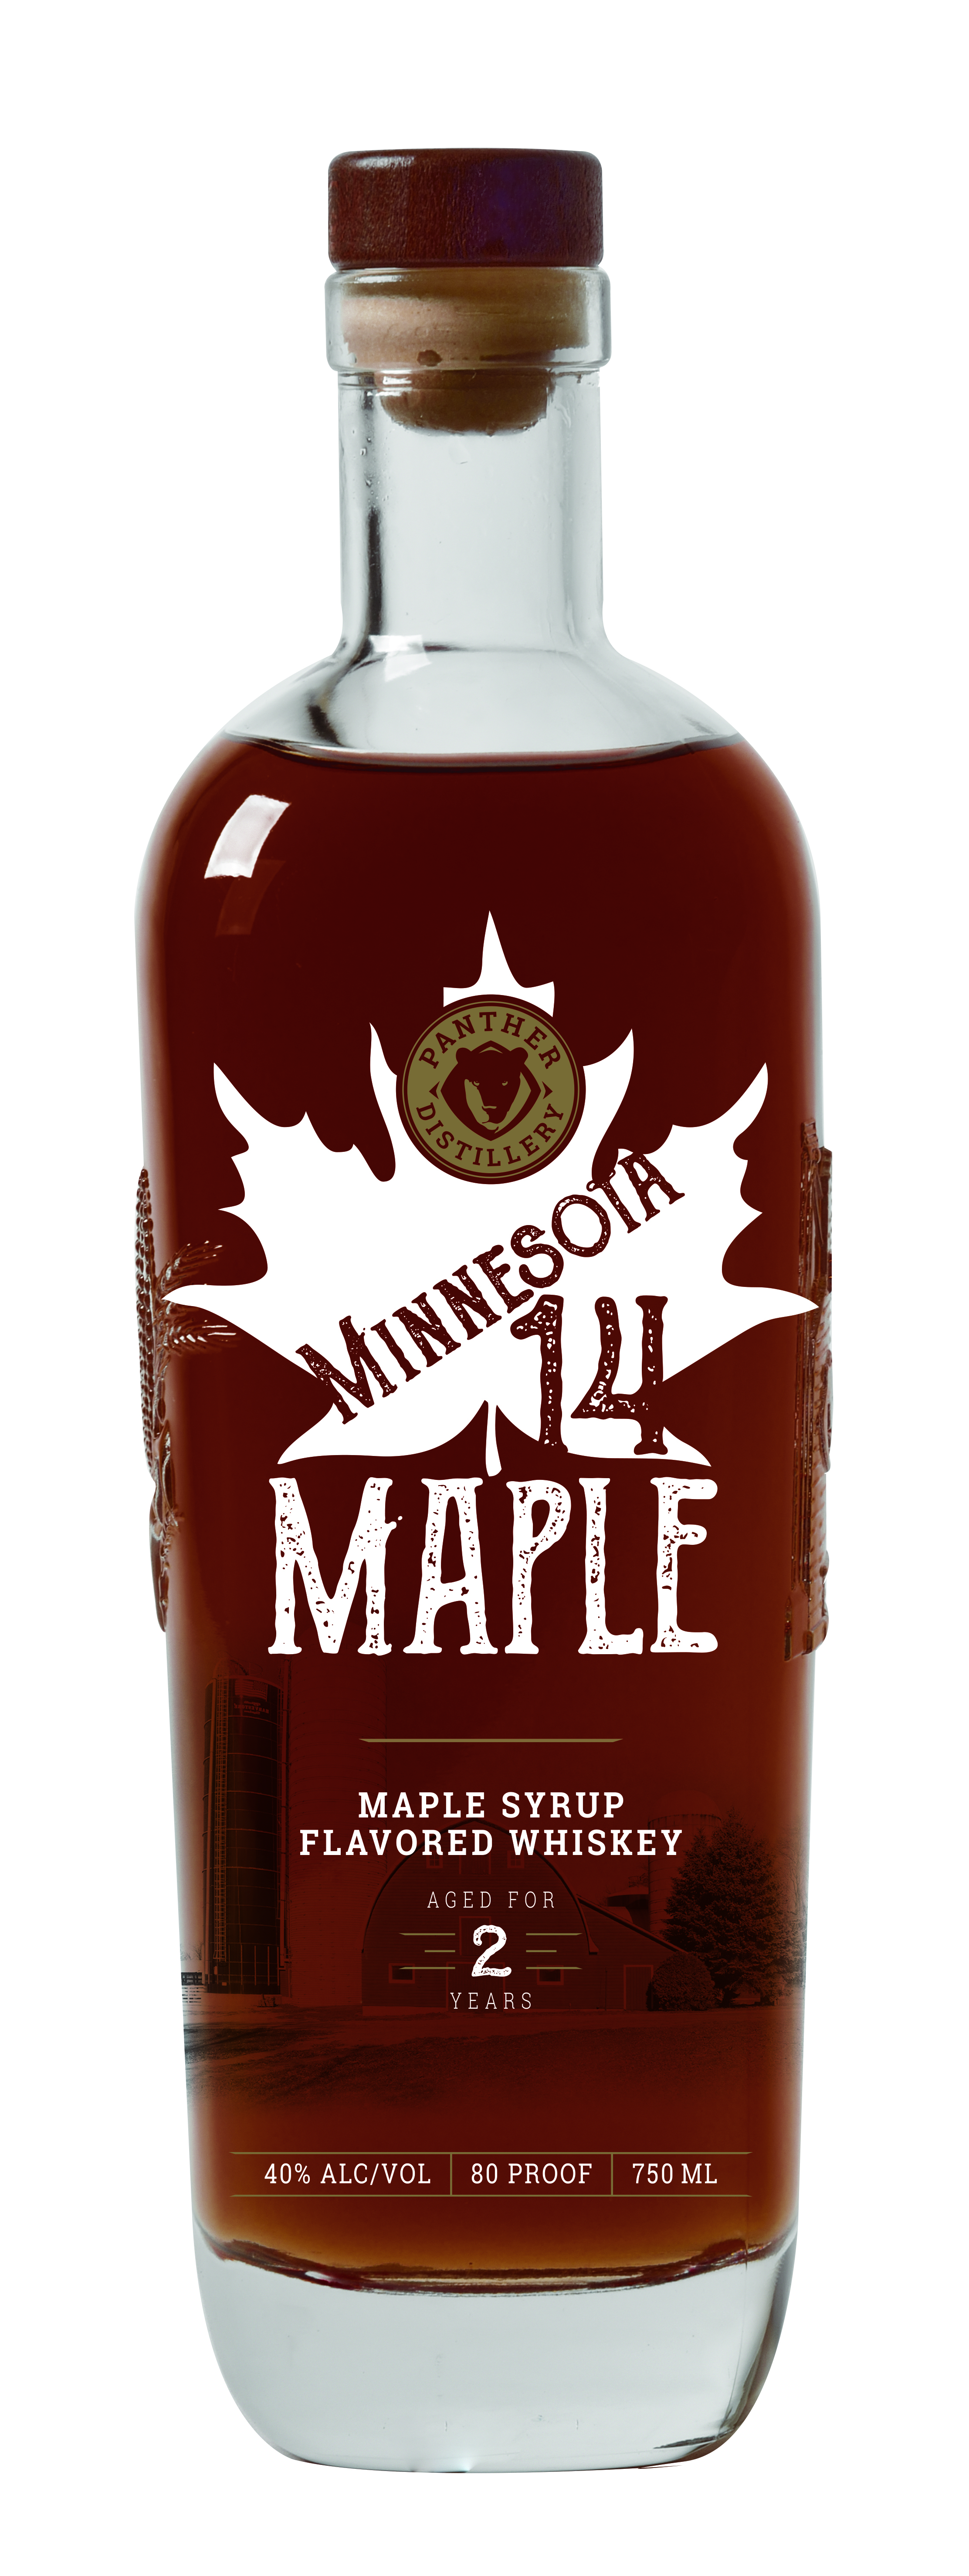 Maple_750ML.jpg